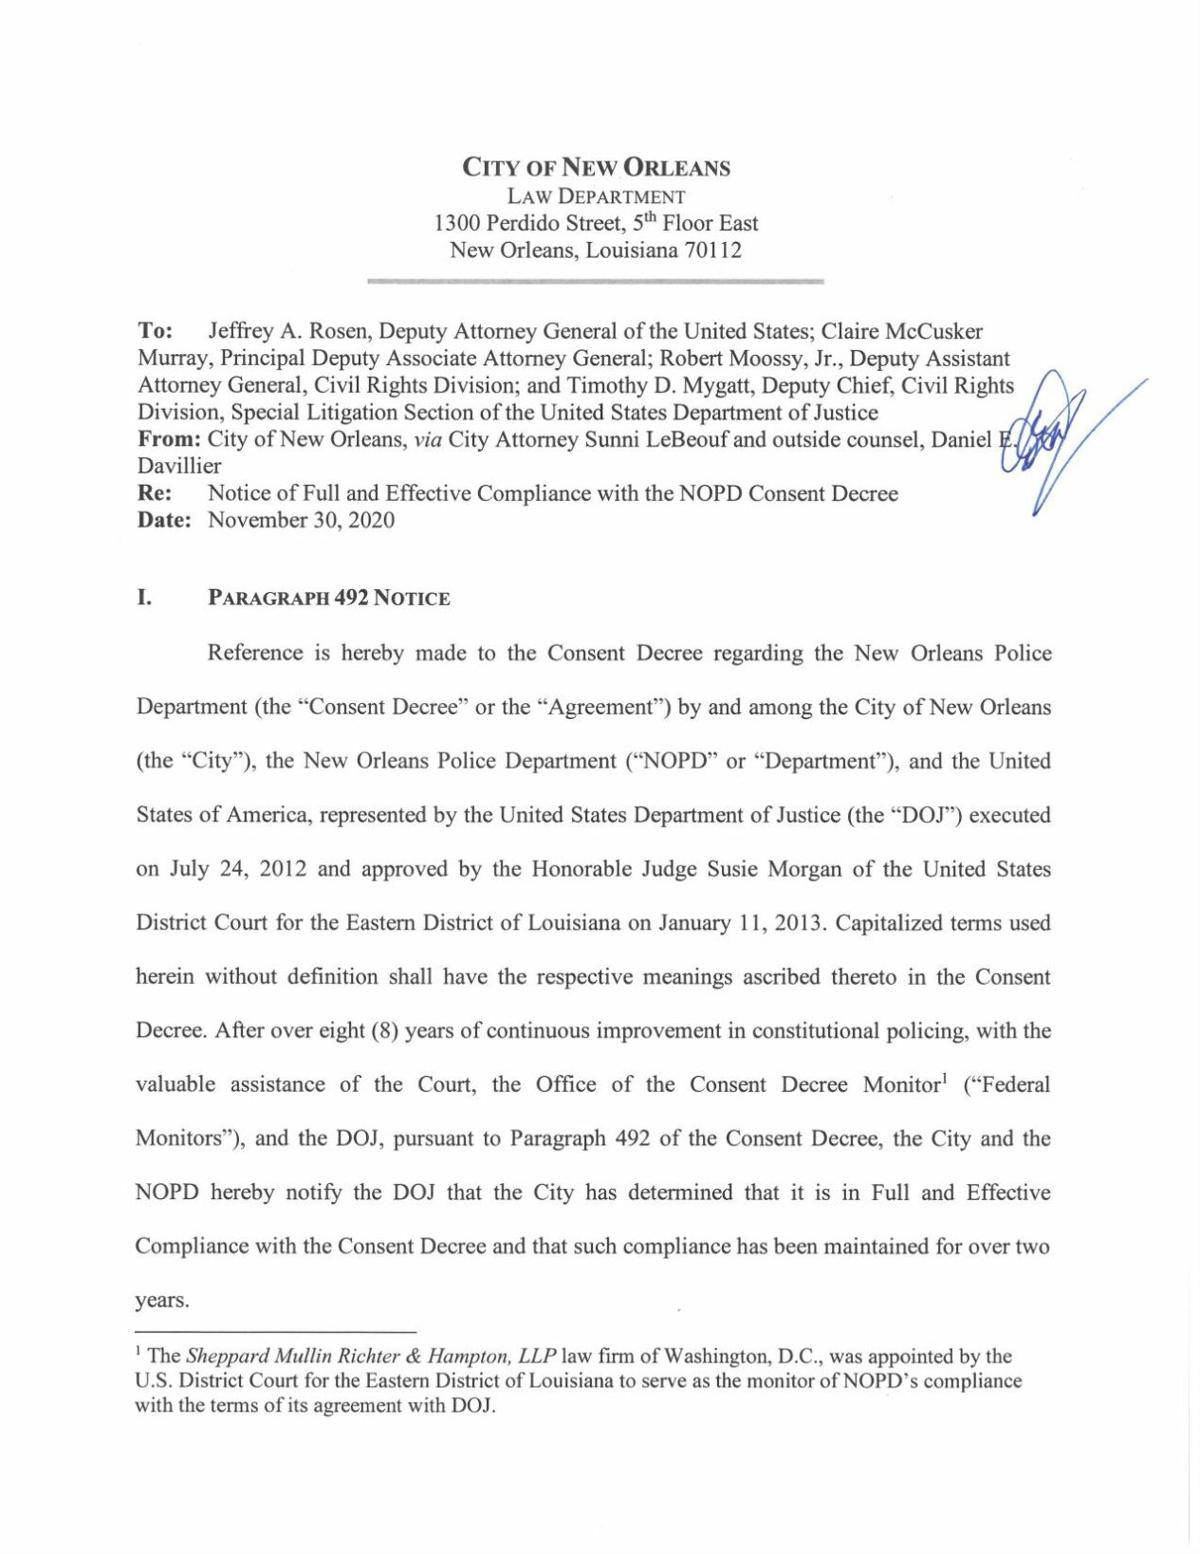 New Orleans consent decree notice